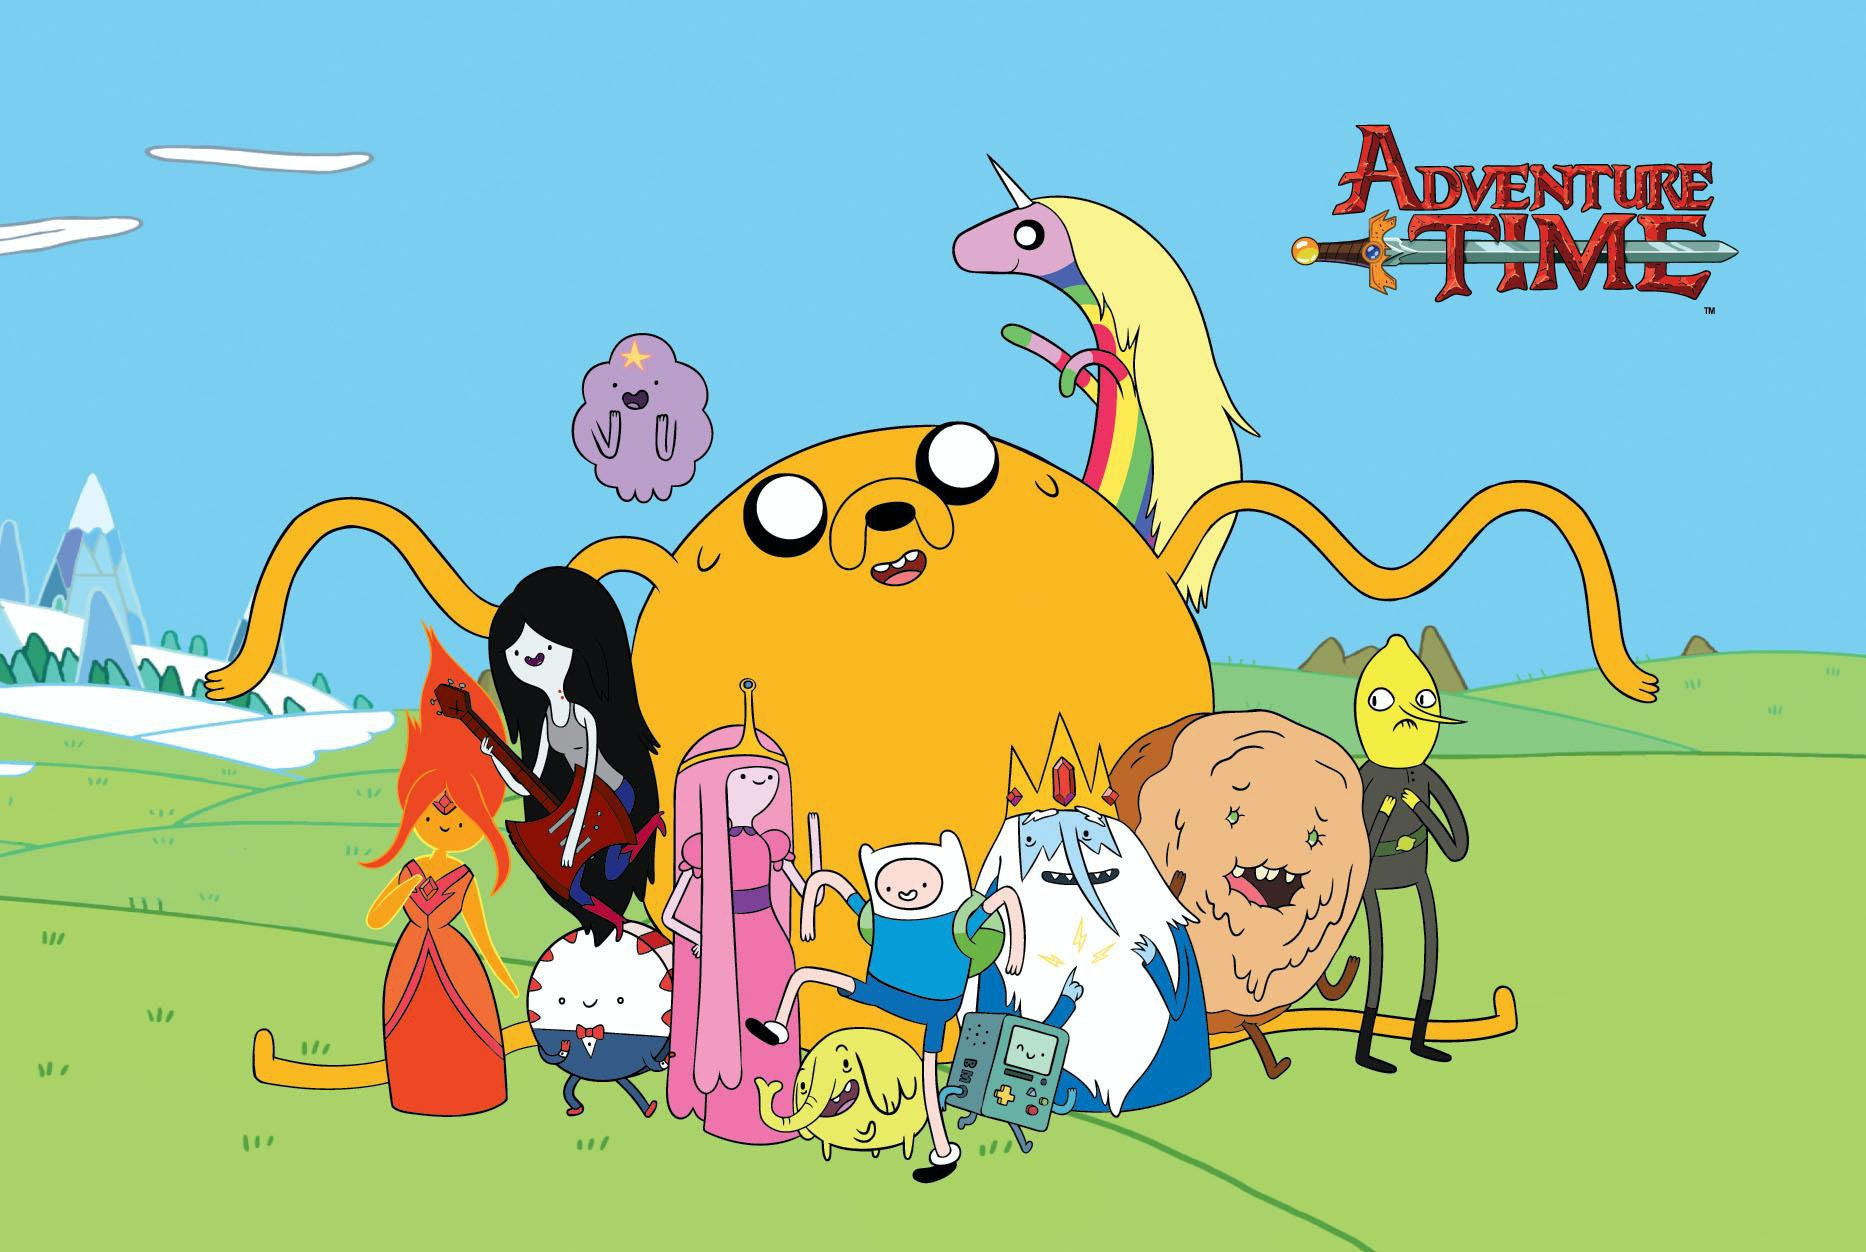 adventure time is turning